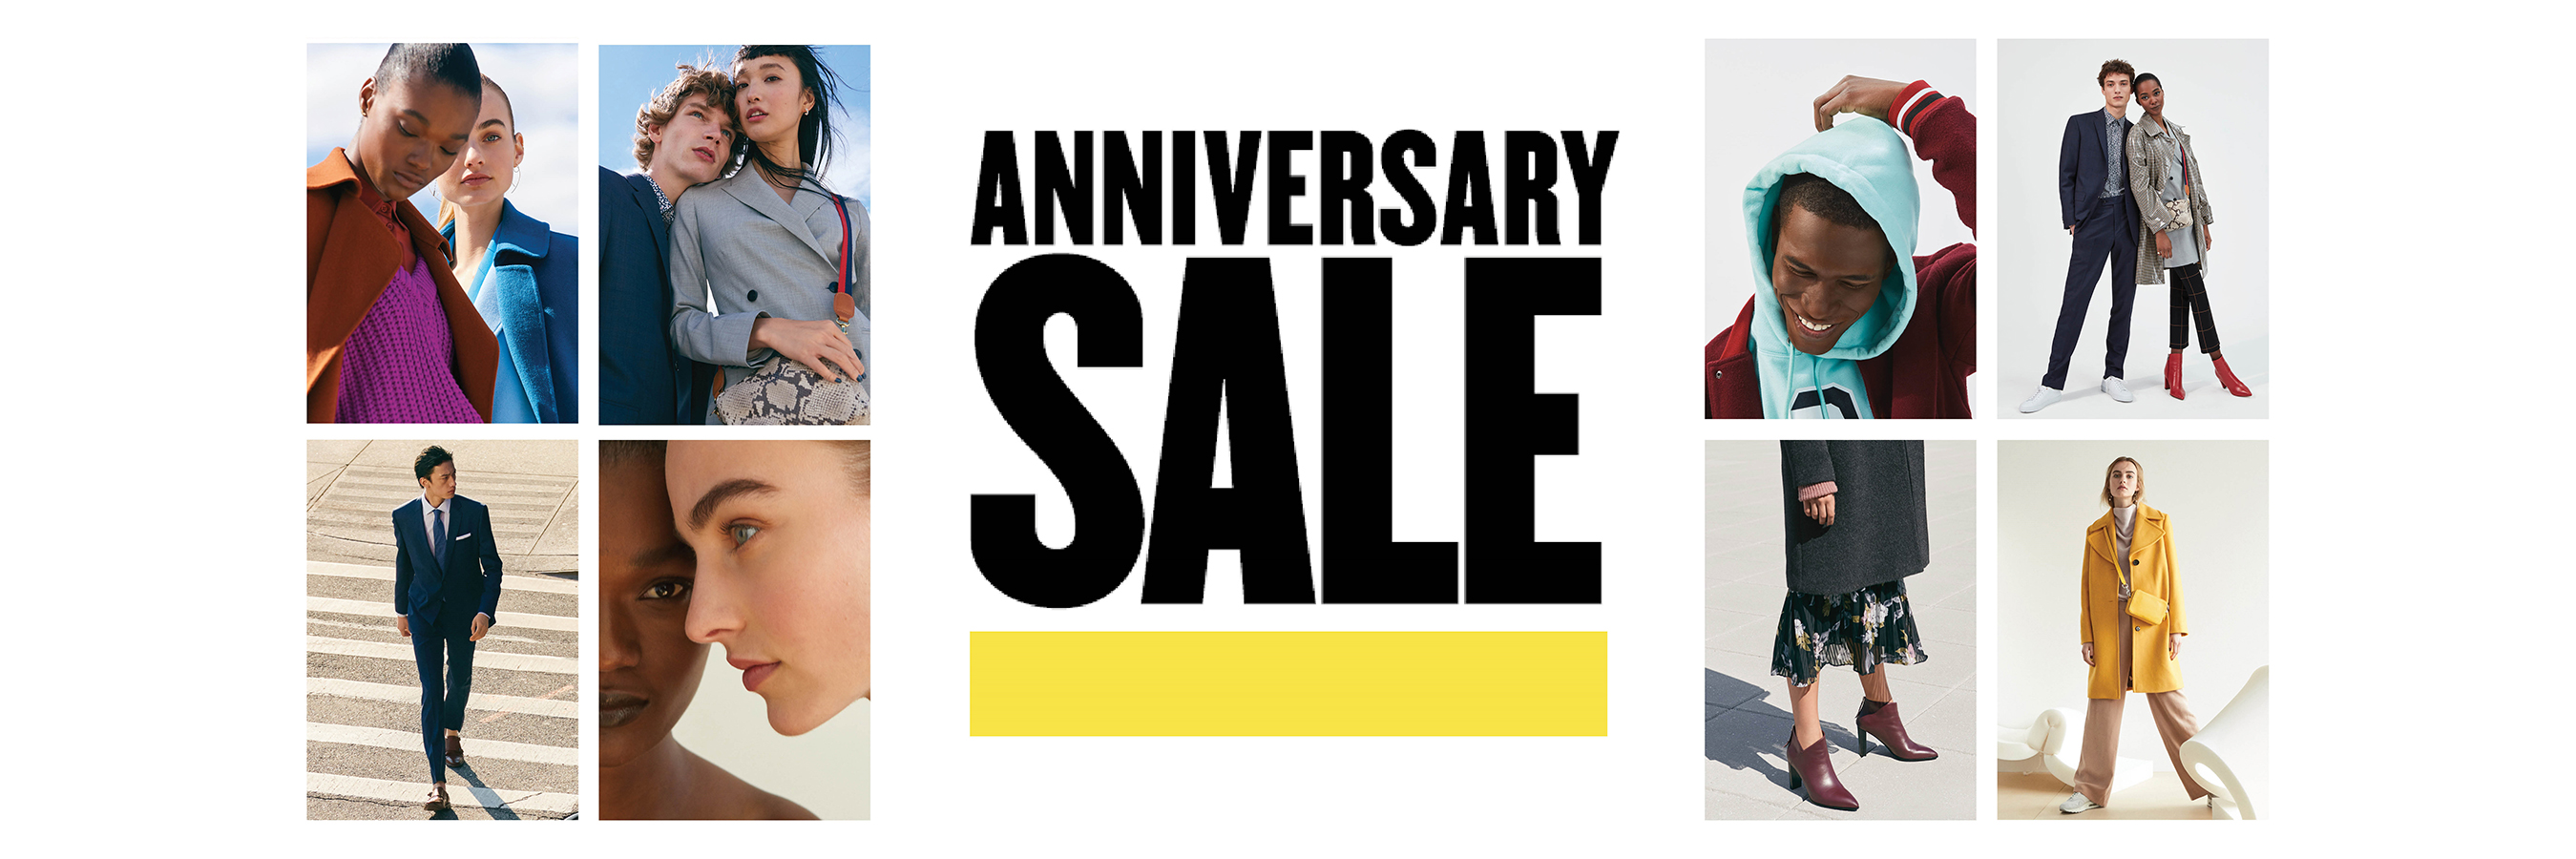 Anniversary Sale graphic